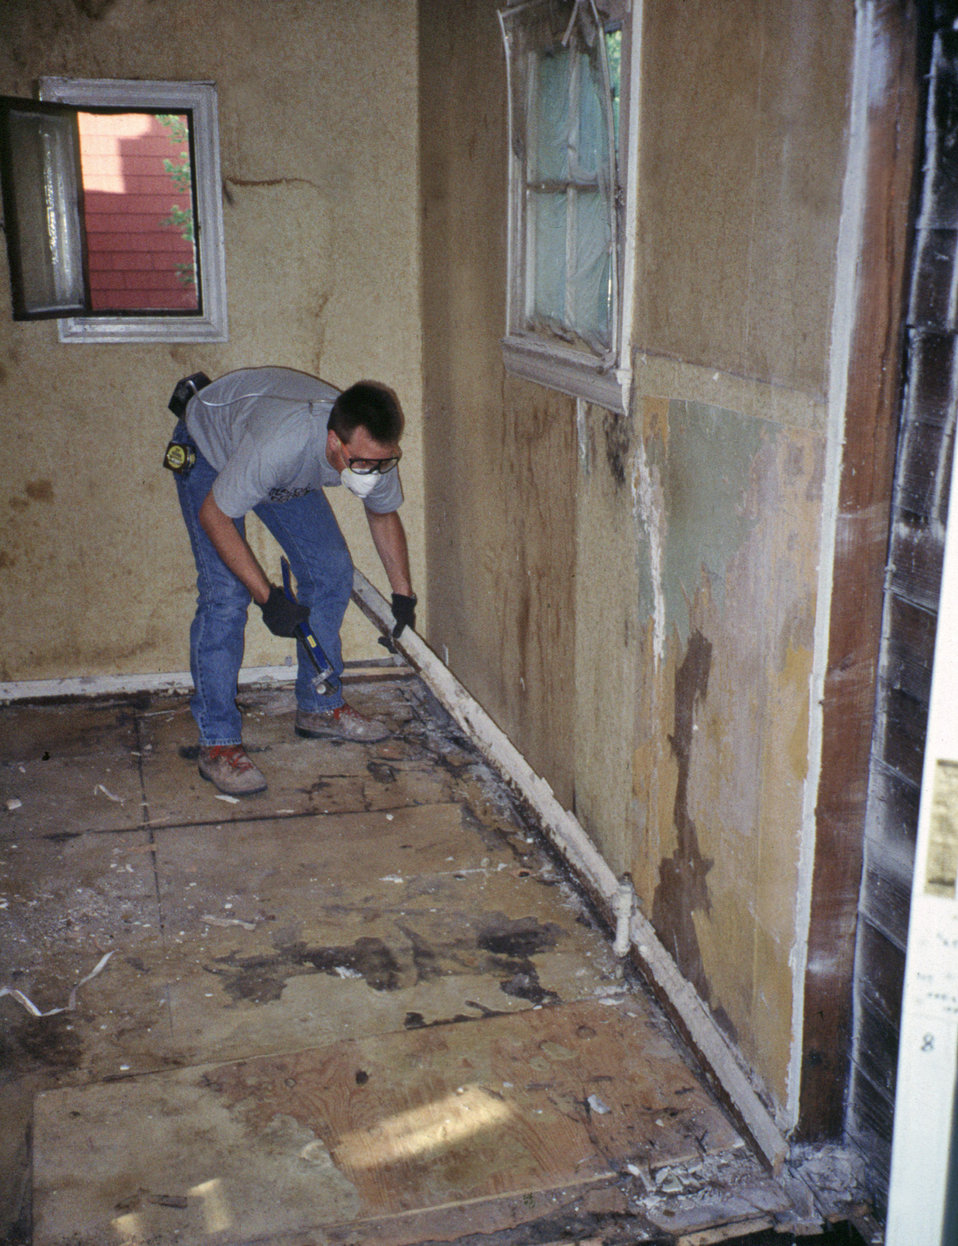 This 1993 photograph shows a worker removing a wood baseboard covered with lead-based paint, demonstrating renovation methods typically used